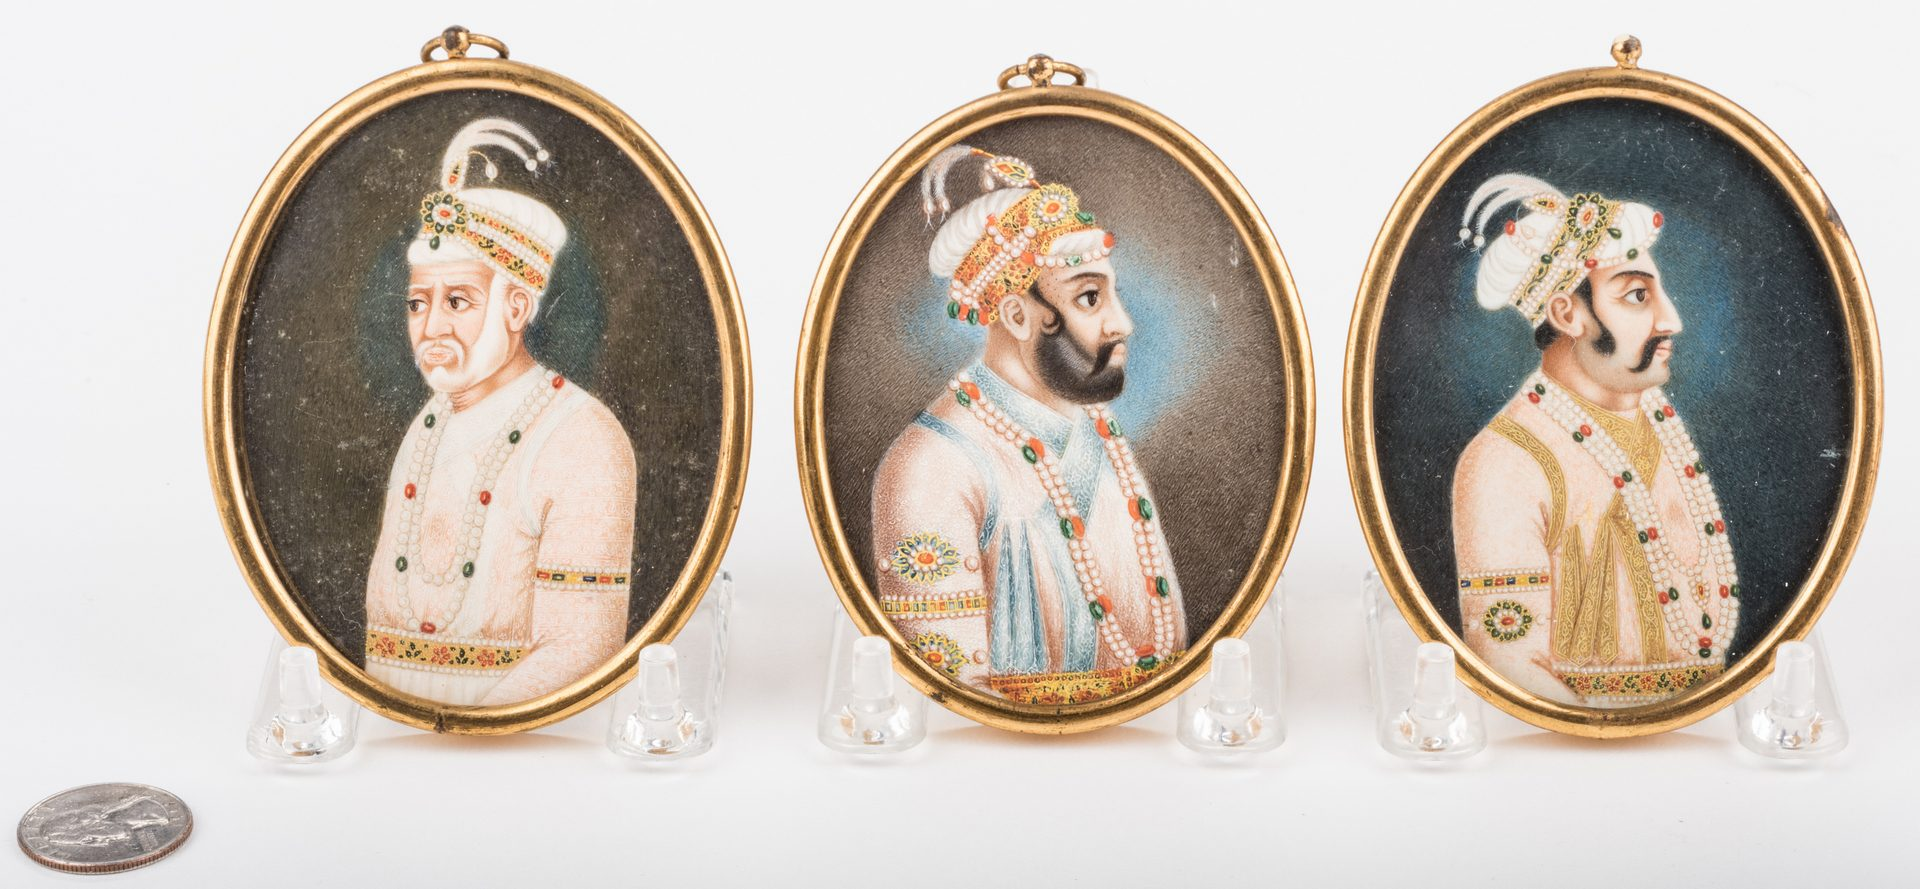 Lot 164: 3 Oval Miniatures of Far East Indian Noblemen